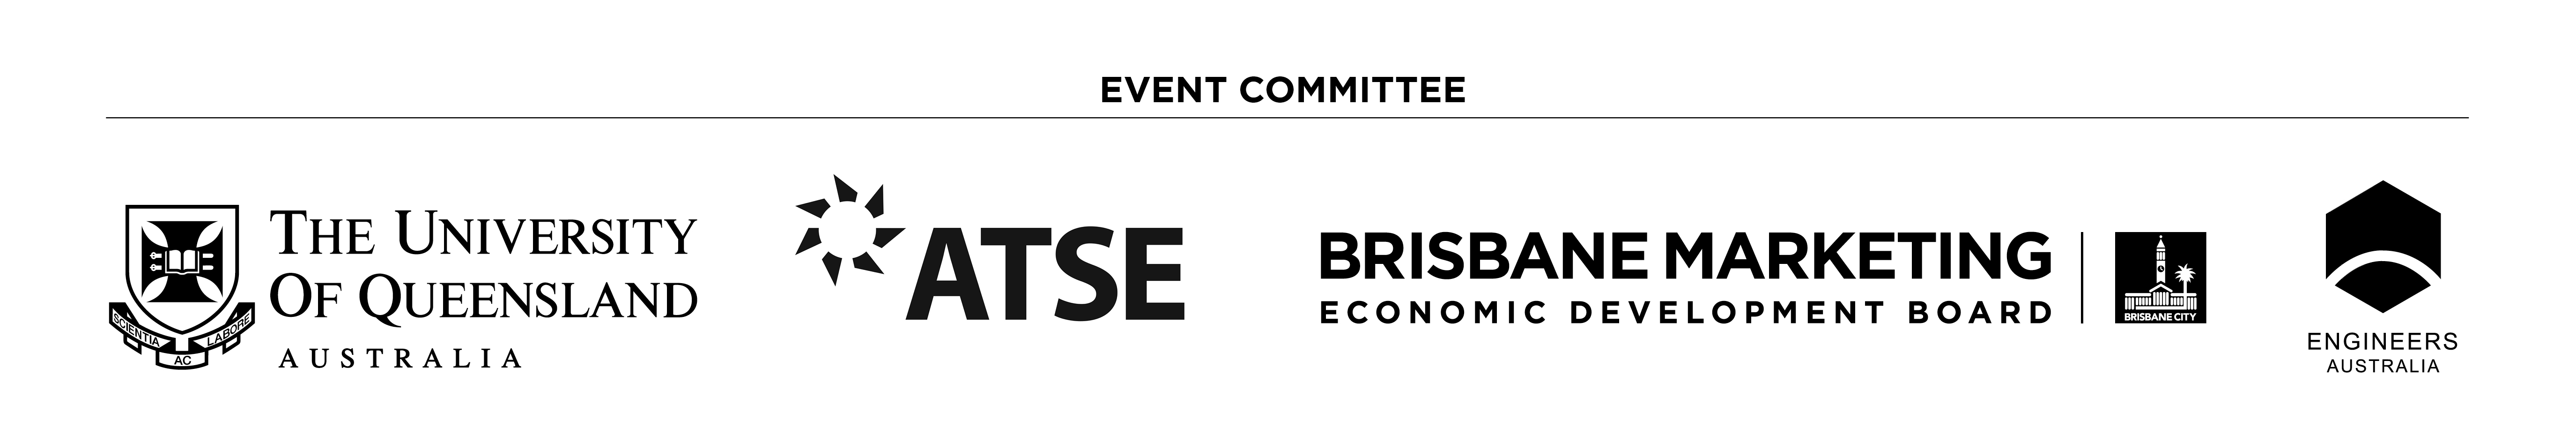 Event Committee Logos